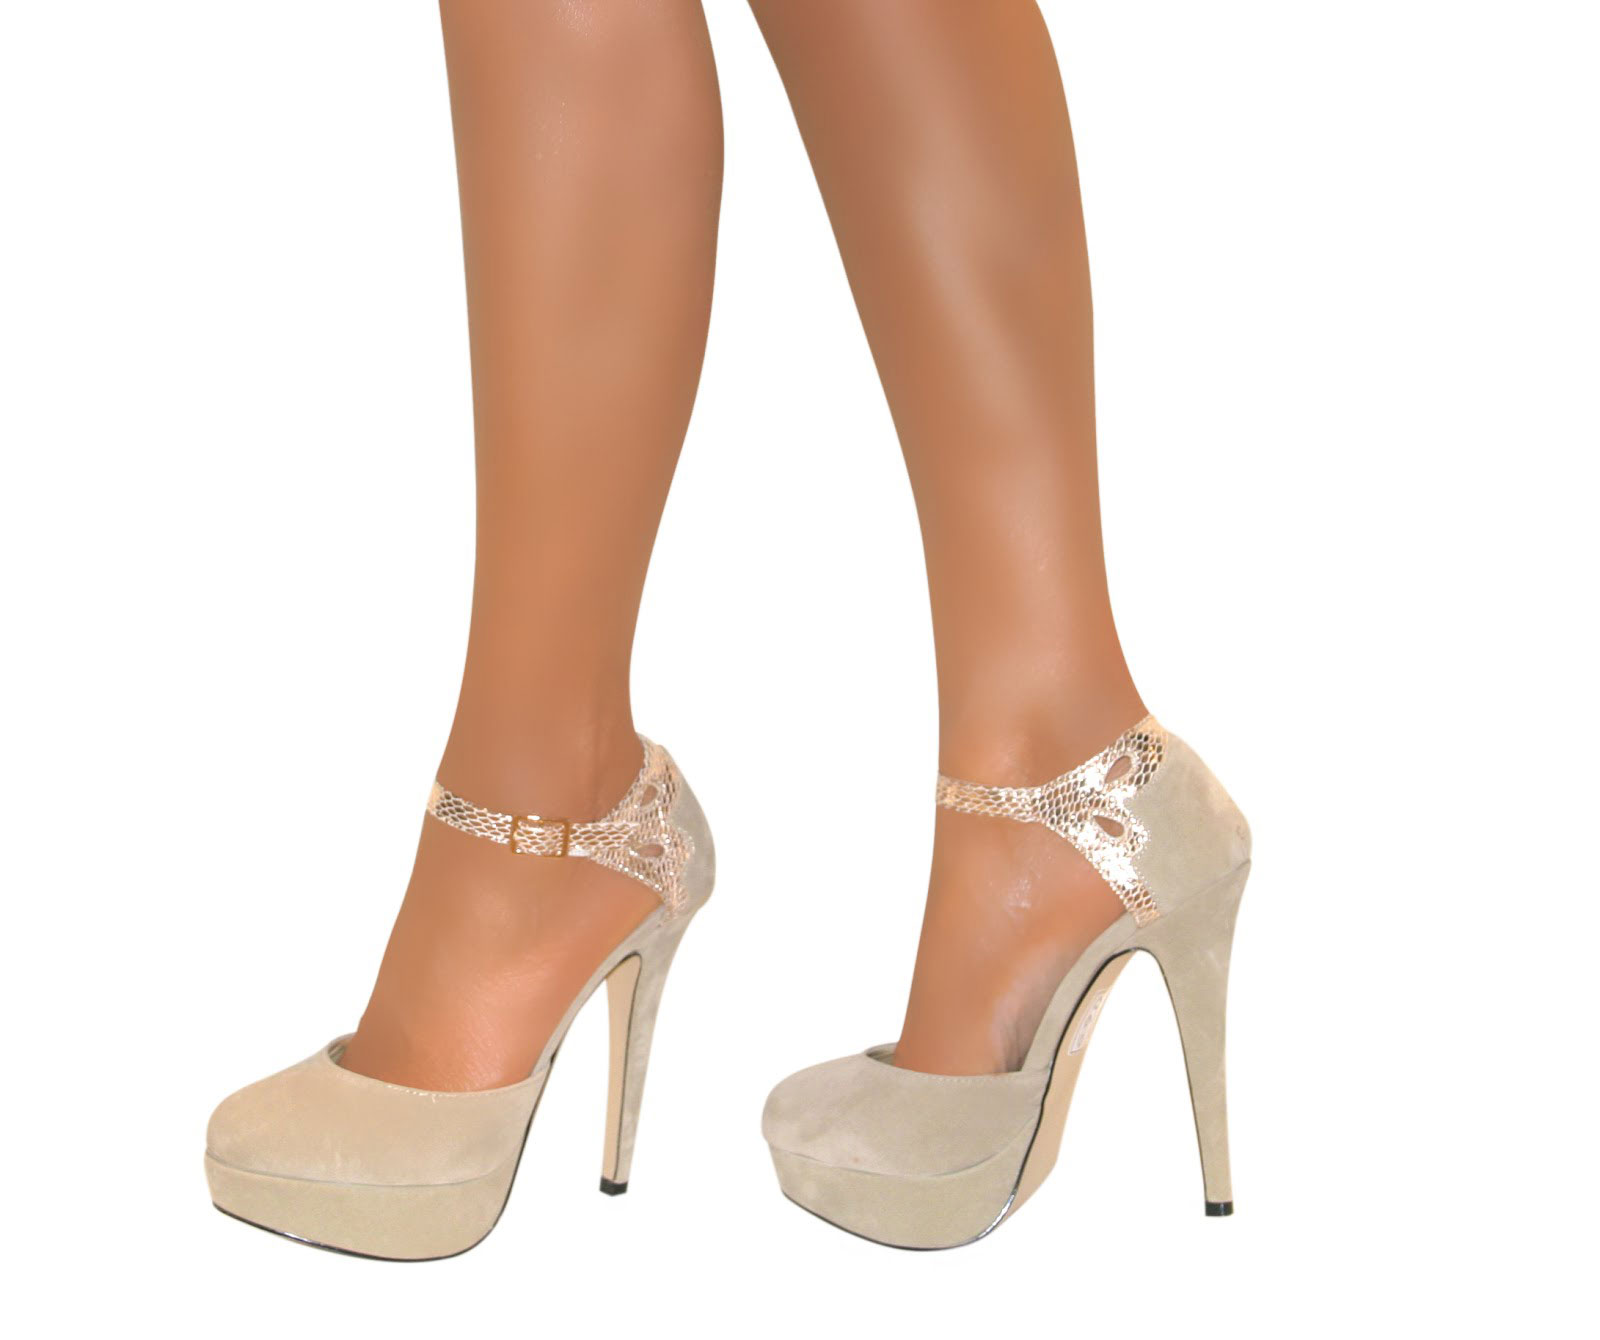 WOMENS-STRAPPY-GLITTER-PLATFORM-HIGH-STILETTO-COURT-SHOE-HEELS-SANDALS-SIZE-3-8